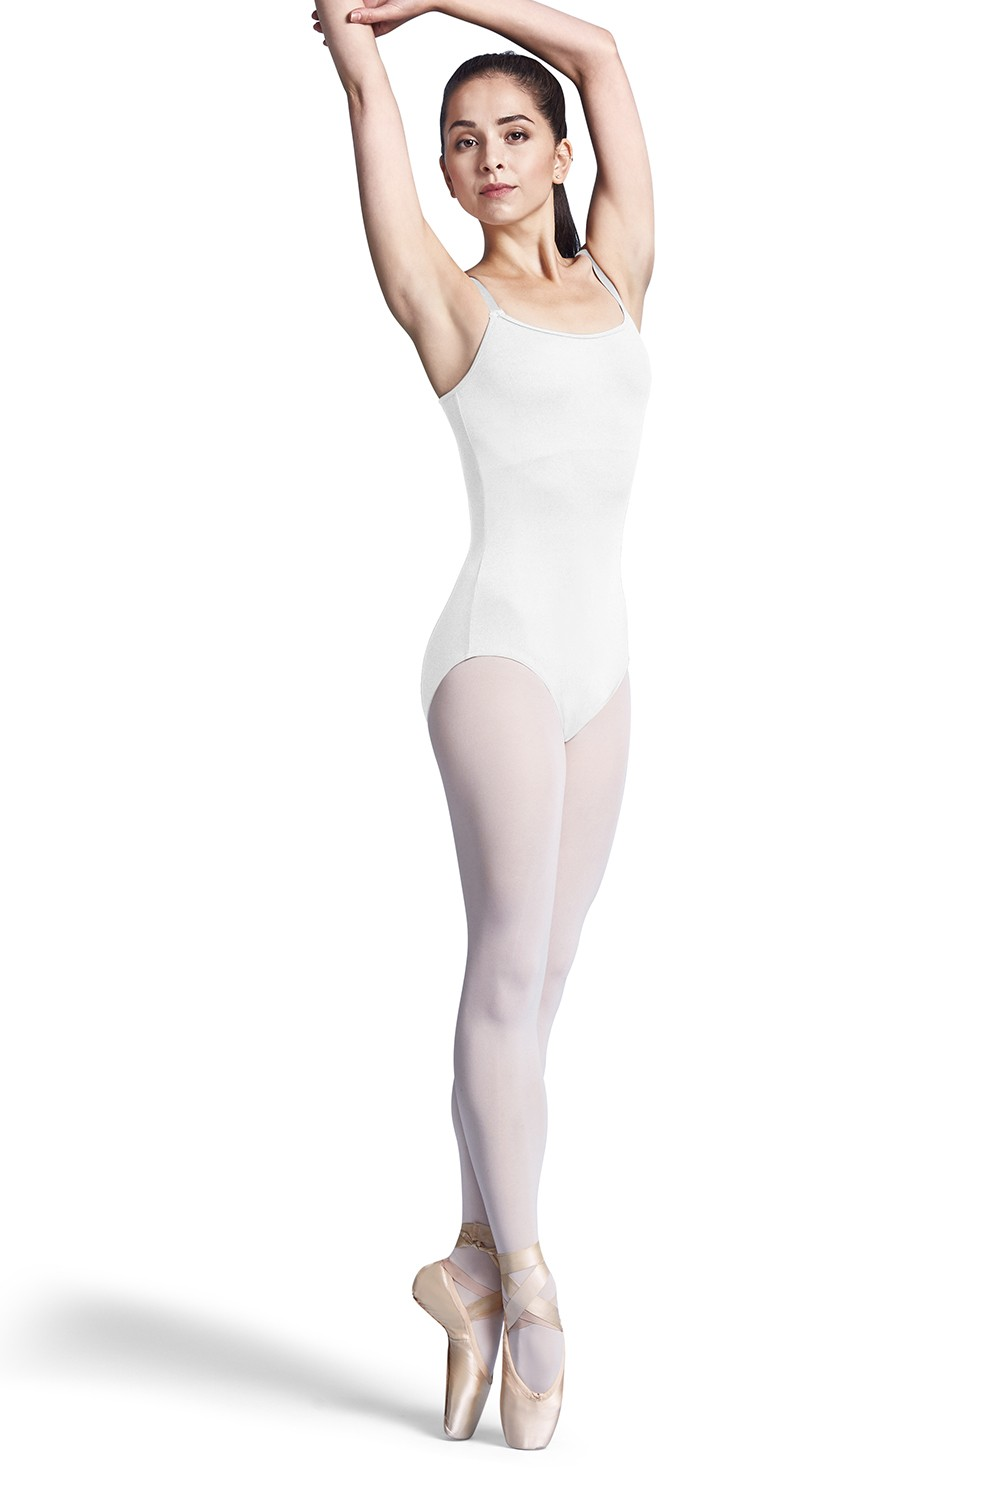 Nylon Adjustable Strap Leotard Women's Dance Leotards